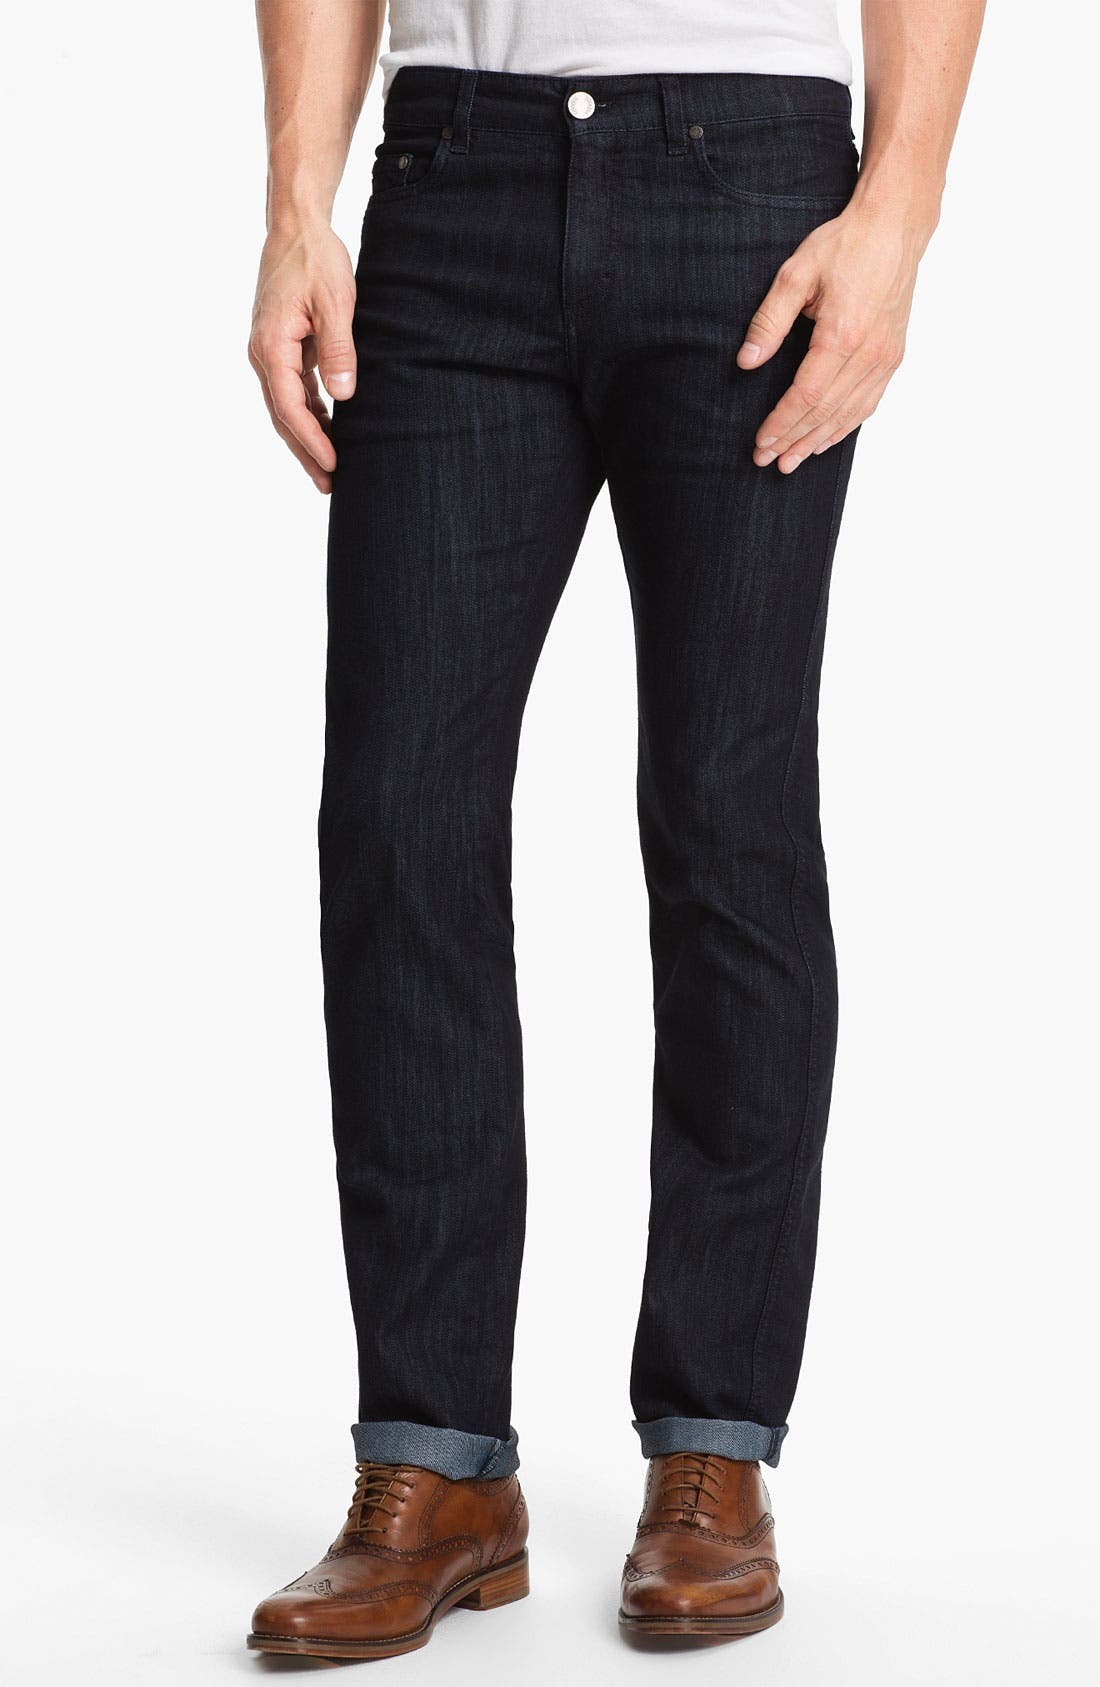 Alternate Image 1 Selected - Z Zegna 'Metalized Effect' Straight Leg Jeans (Navy)